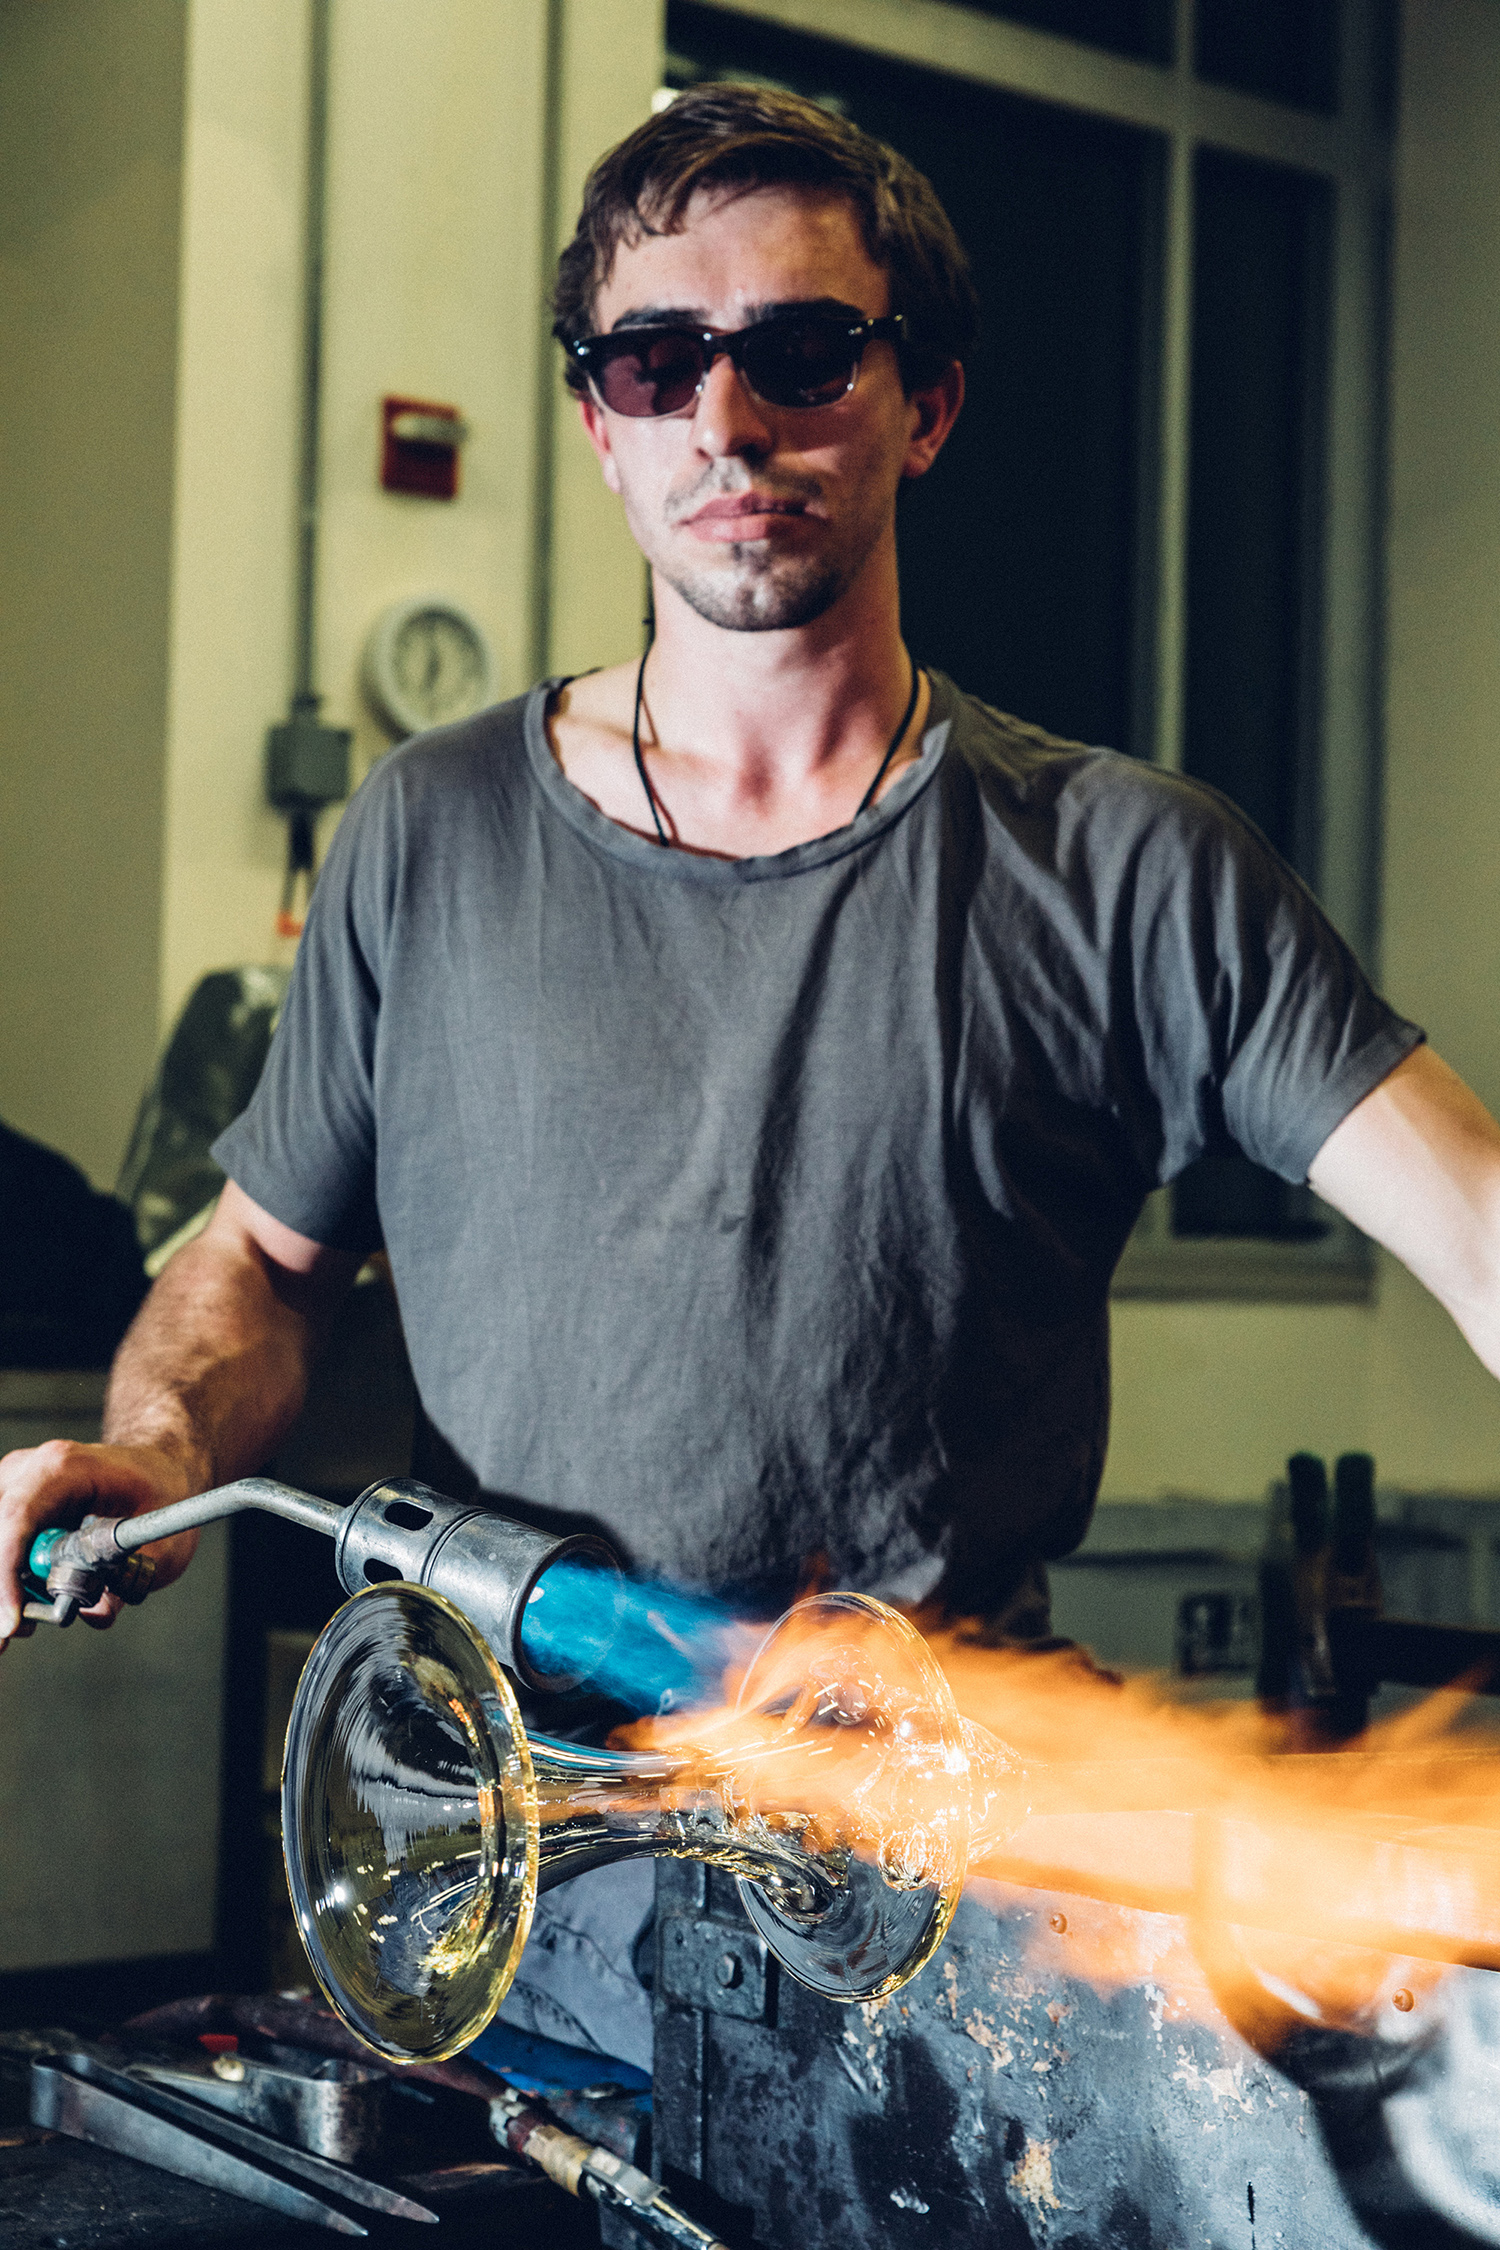 A student puts a torch to a project in the glass hot shop.